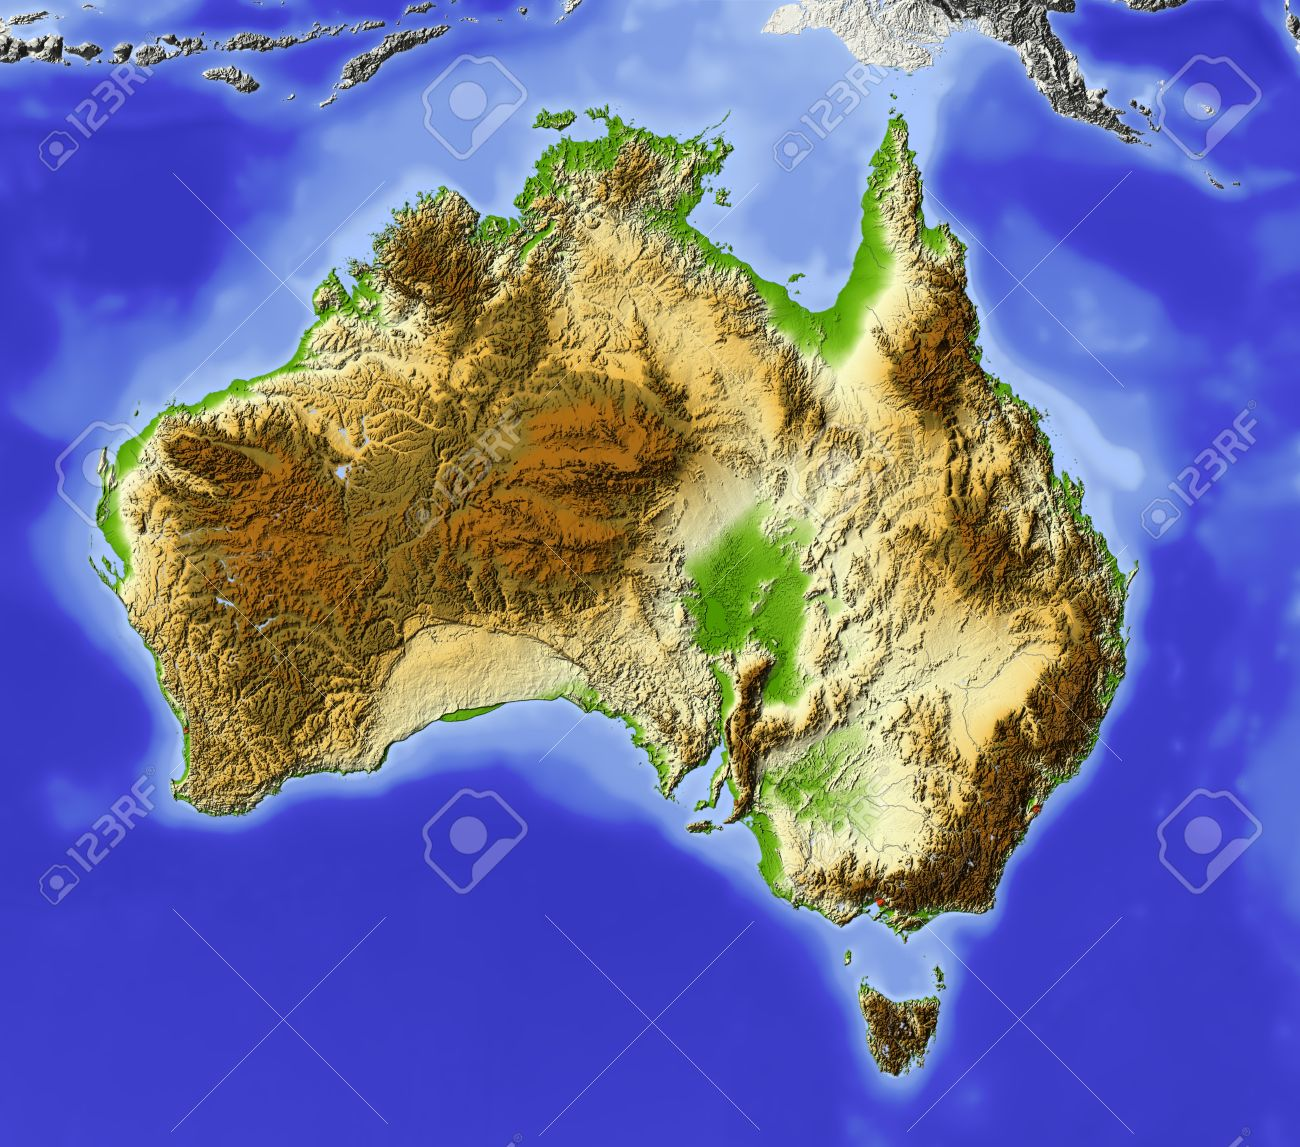 Terrain Map Stock Photos Royalty Free Terrain Map Images And Pictures - Earth terrain map